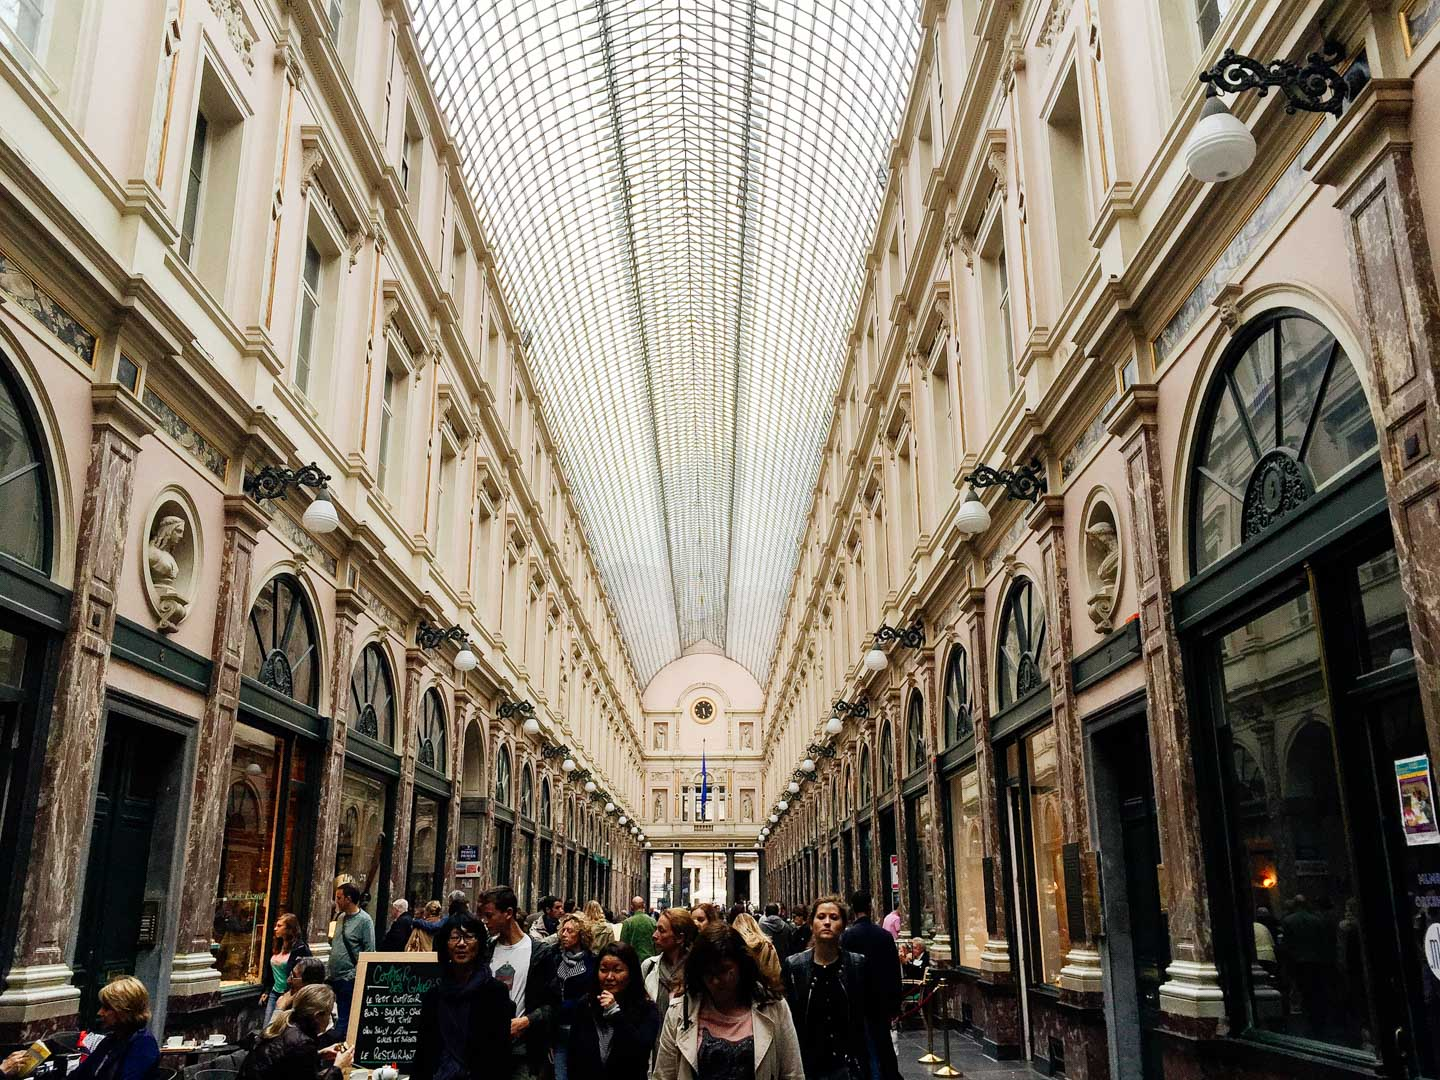 Les Galeries Royales Saint-Hubert : a historic landmark and a gorgeous shopping hall for chocolate and luxury goods